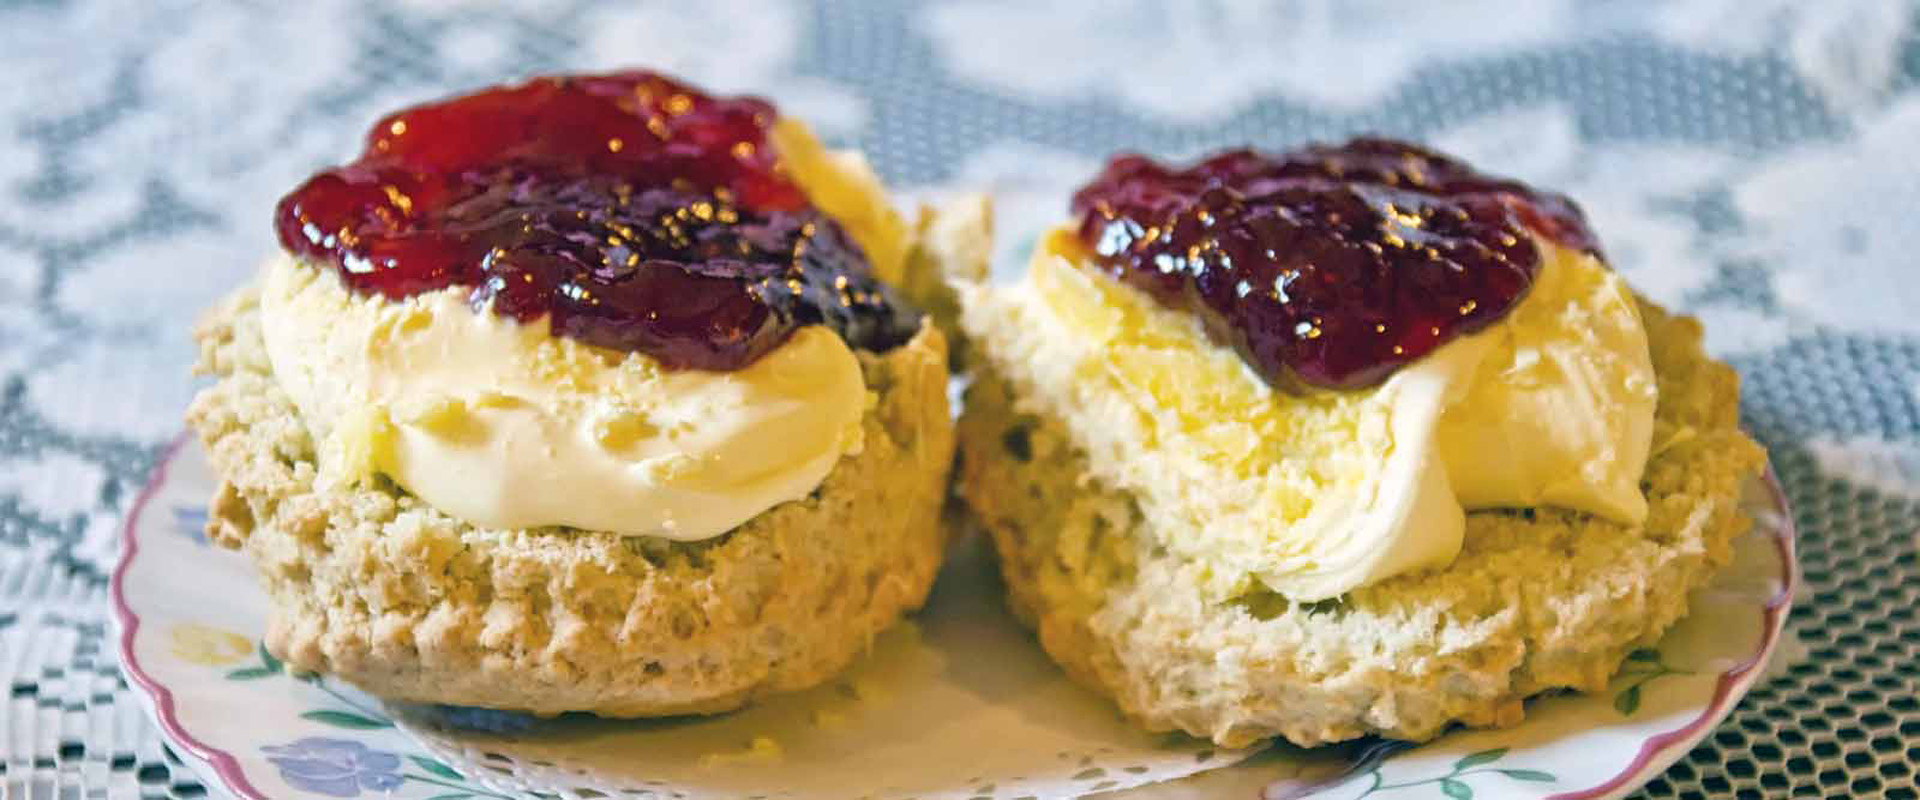 Scones with cream first then jam